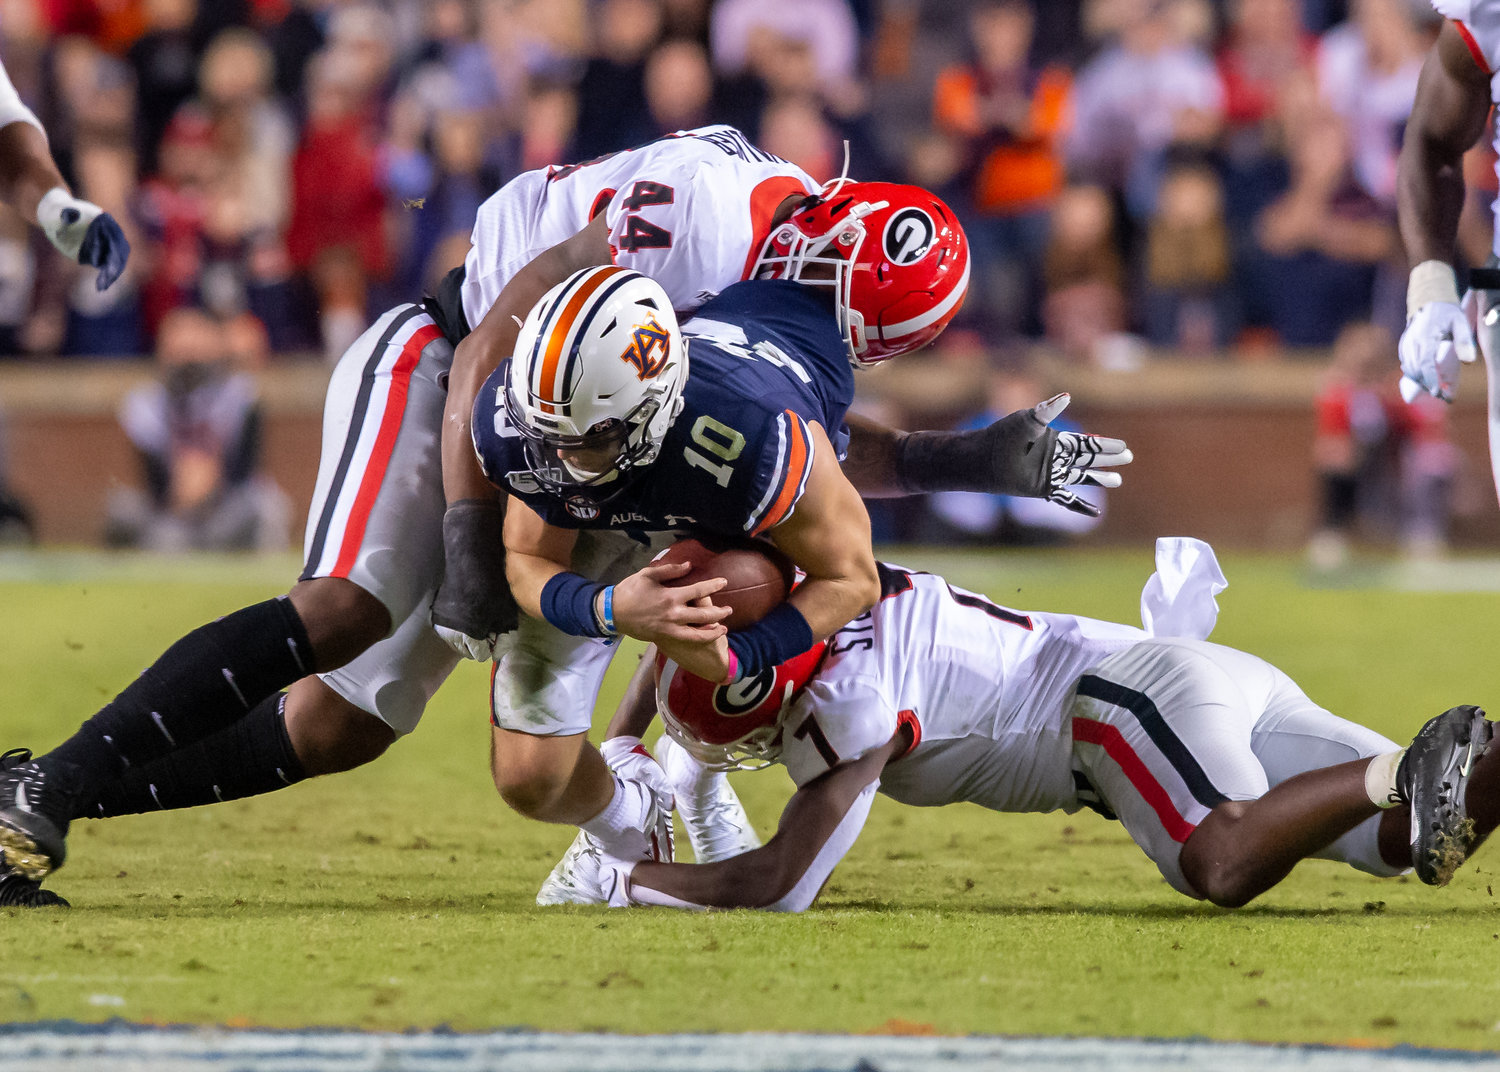 Auburn Tigers quarterback Bo Nix (10) is brought down by Georgia Bulldogs defensive lineman Travon Walker (44) and defensive back Tyrique Stevenson (7) during the second half of Saturday's game, at Jordan-Hare Stadium in Auburn,, AL. Daily Mountain Eagle -  Jeff Johnsey